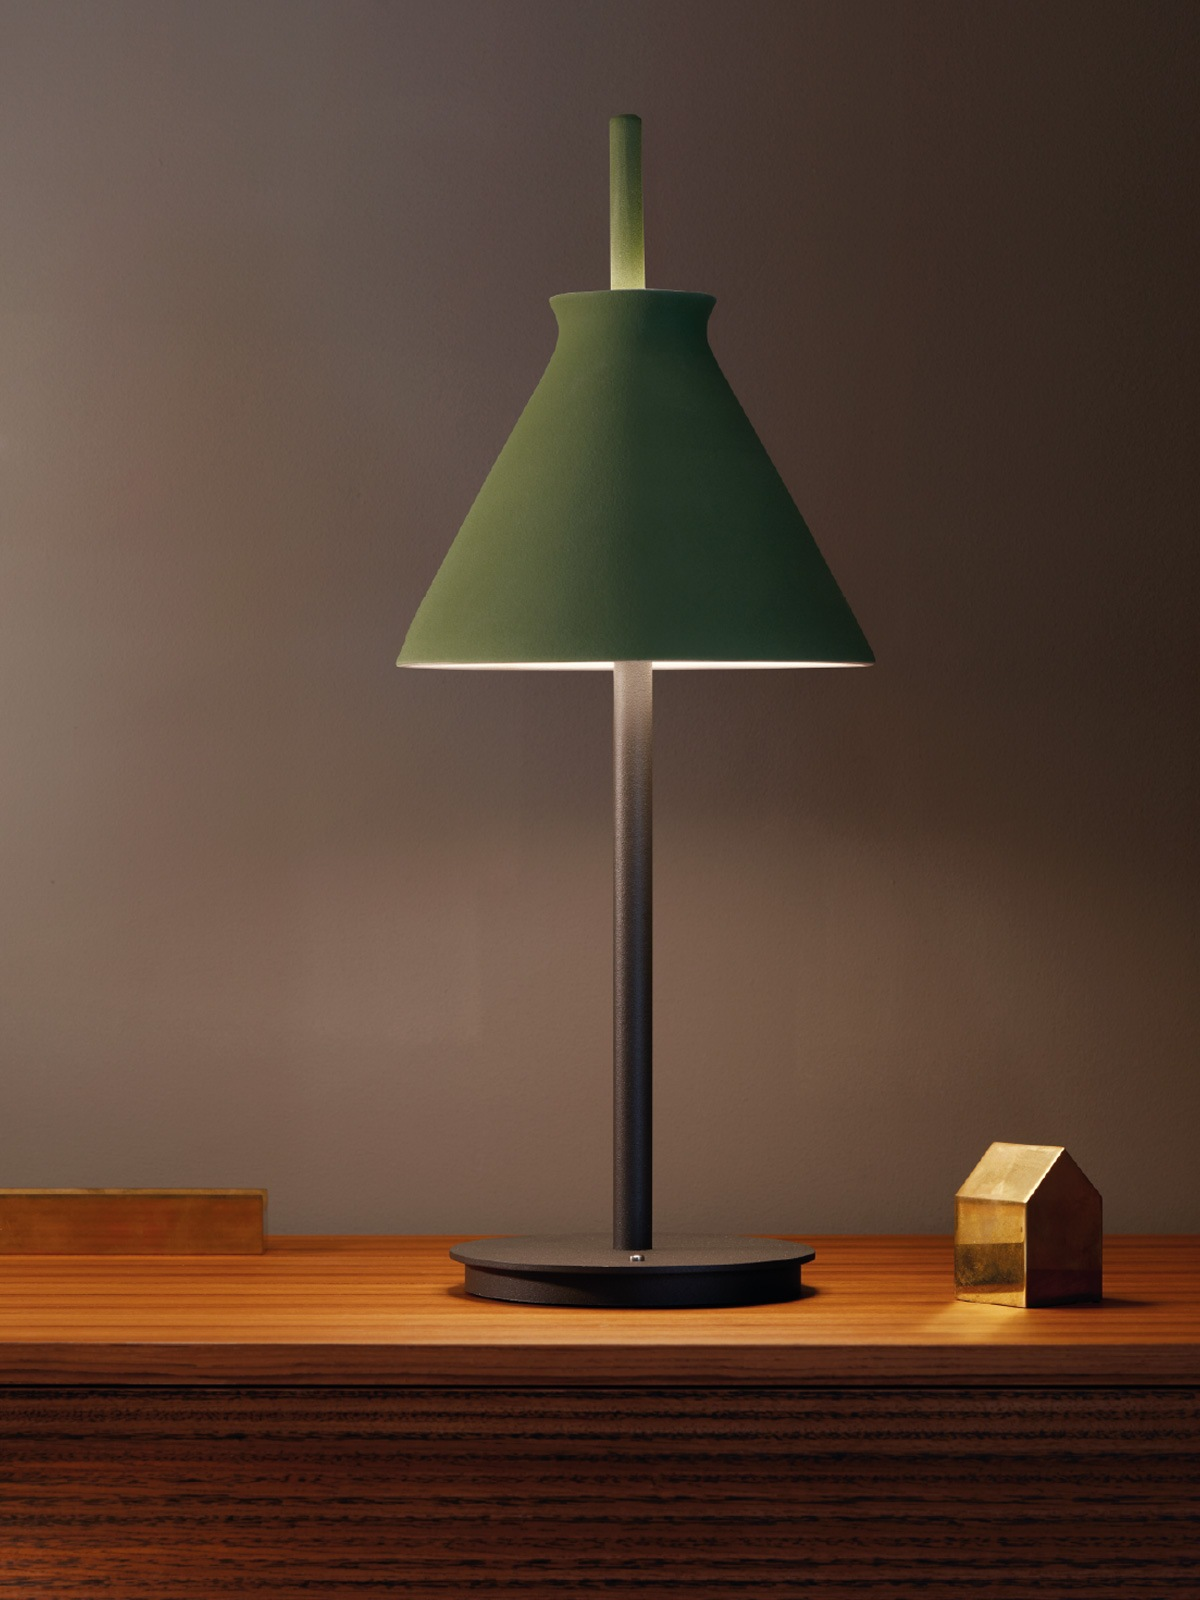 DesignOrt Blog: Totana Table Pott Keramik Lampe DesignOrt Berlin Onlineshop